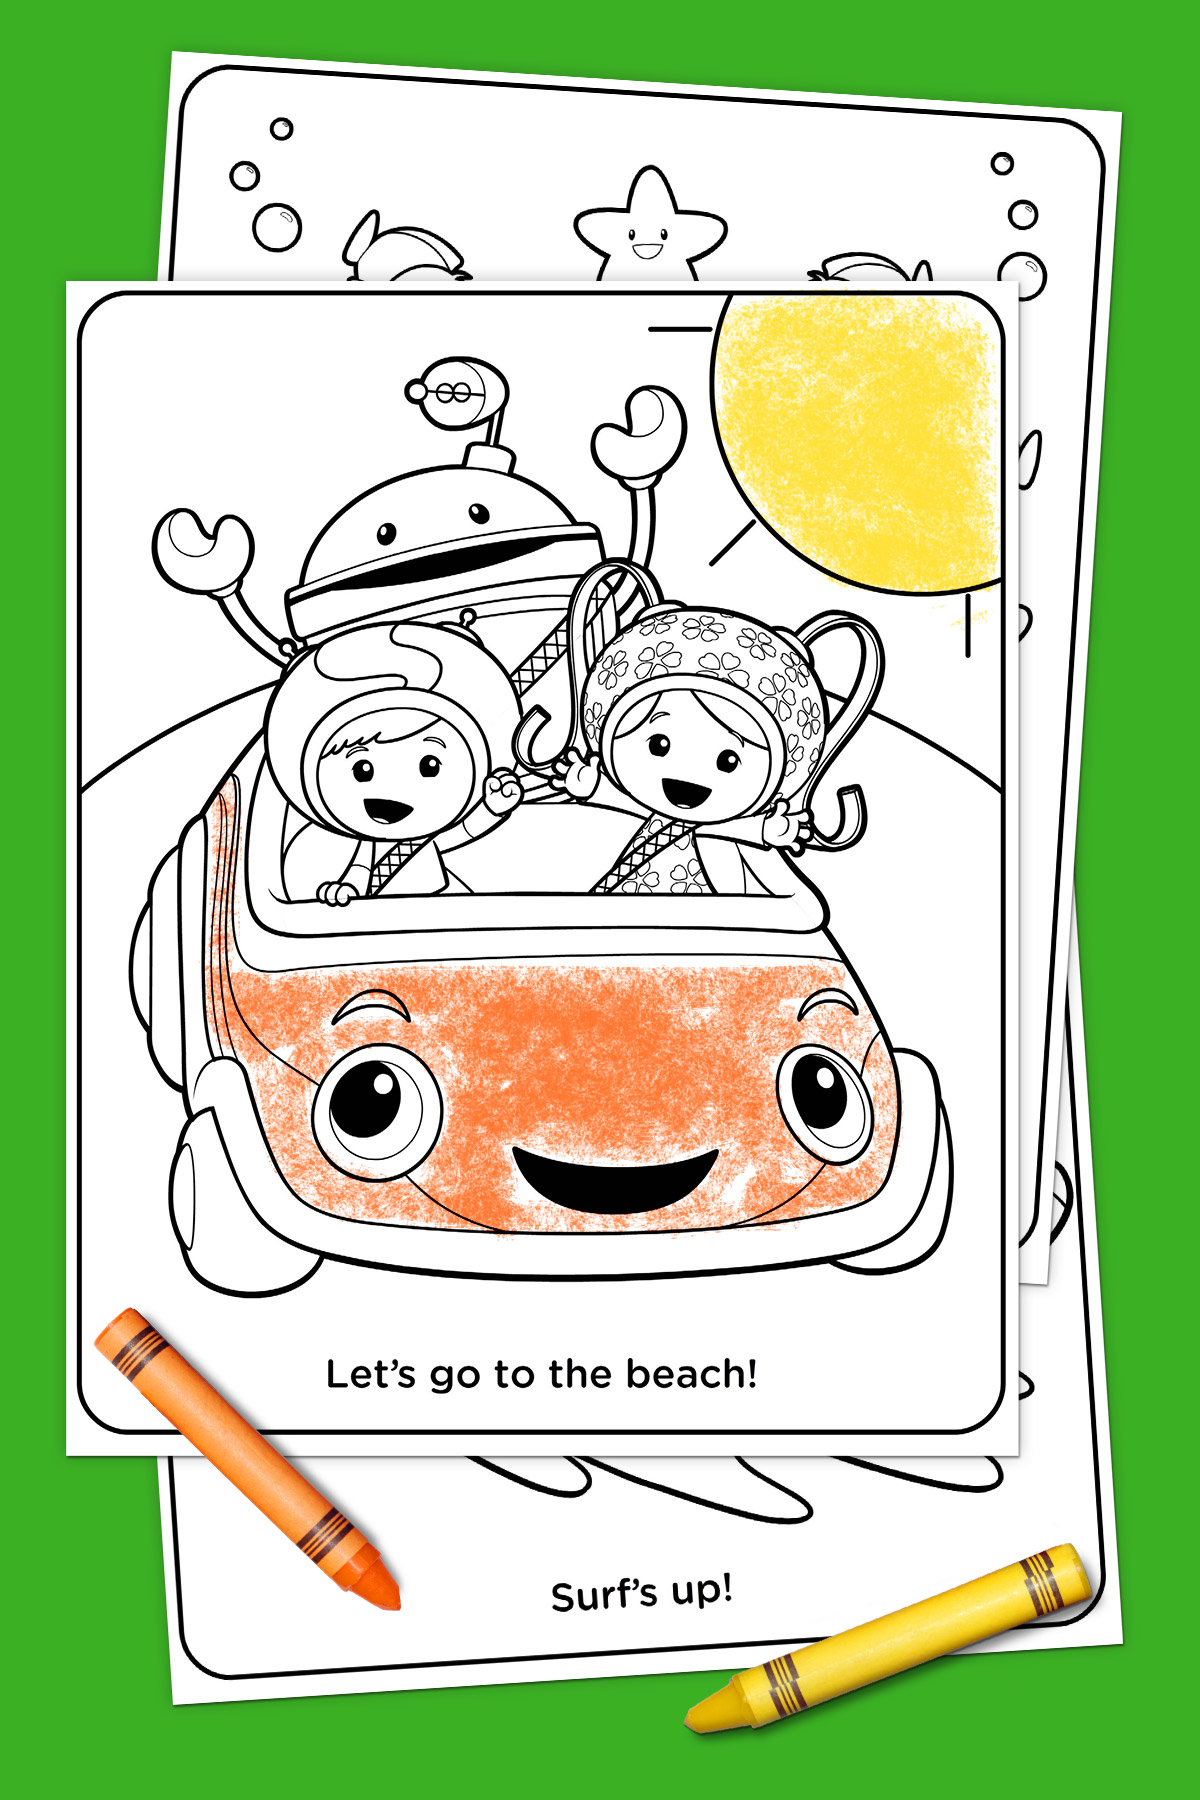 team umizoomi summertime coloring pack nickelodeon parents